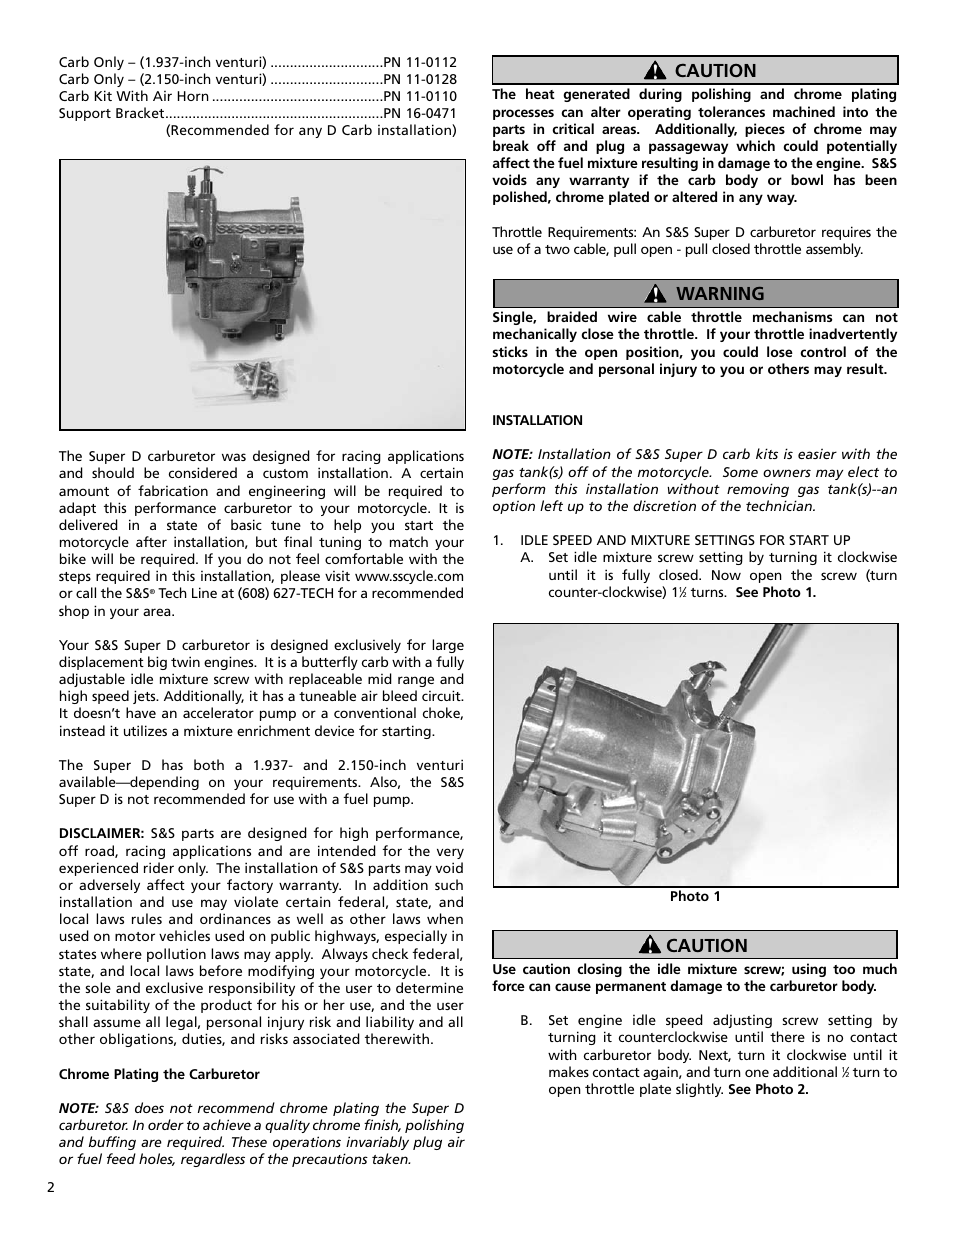 Warning Caution Ss Cycle Super D Gasoline Carburetor Air Screw Adjusts The Amount Of To Idle Circuit 1 4 User Manual Page 2 8